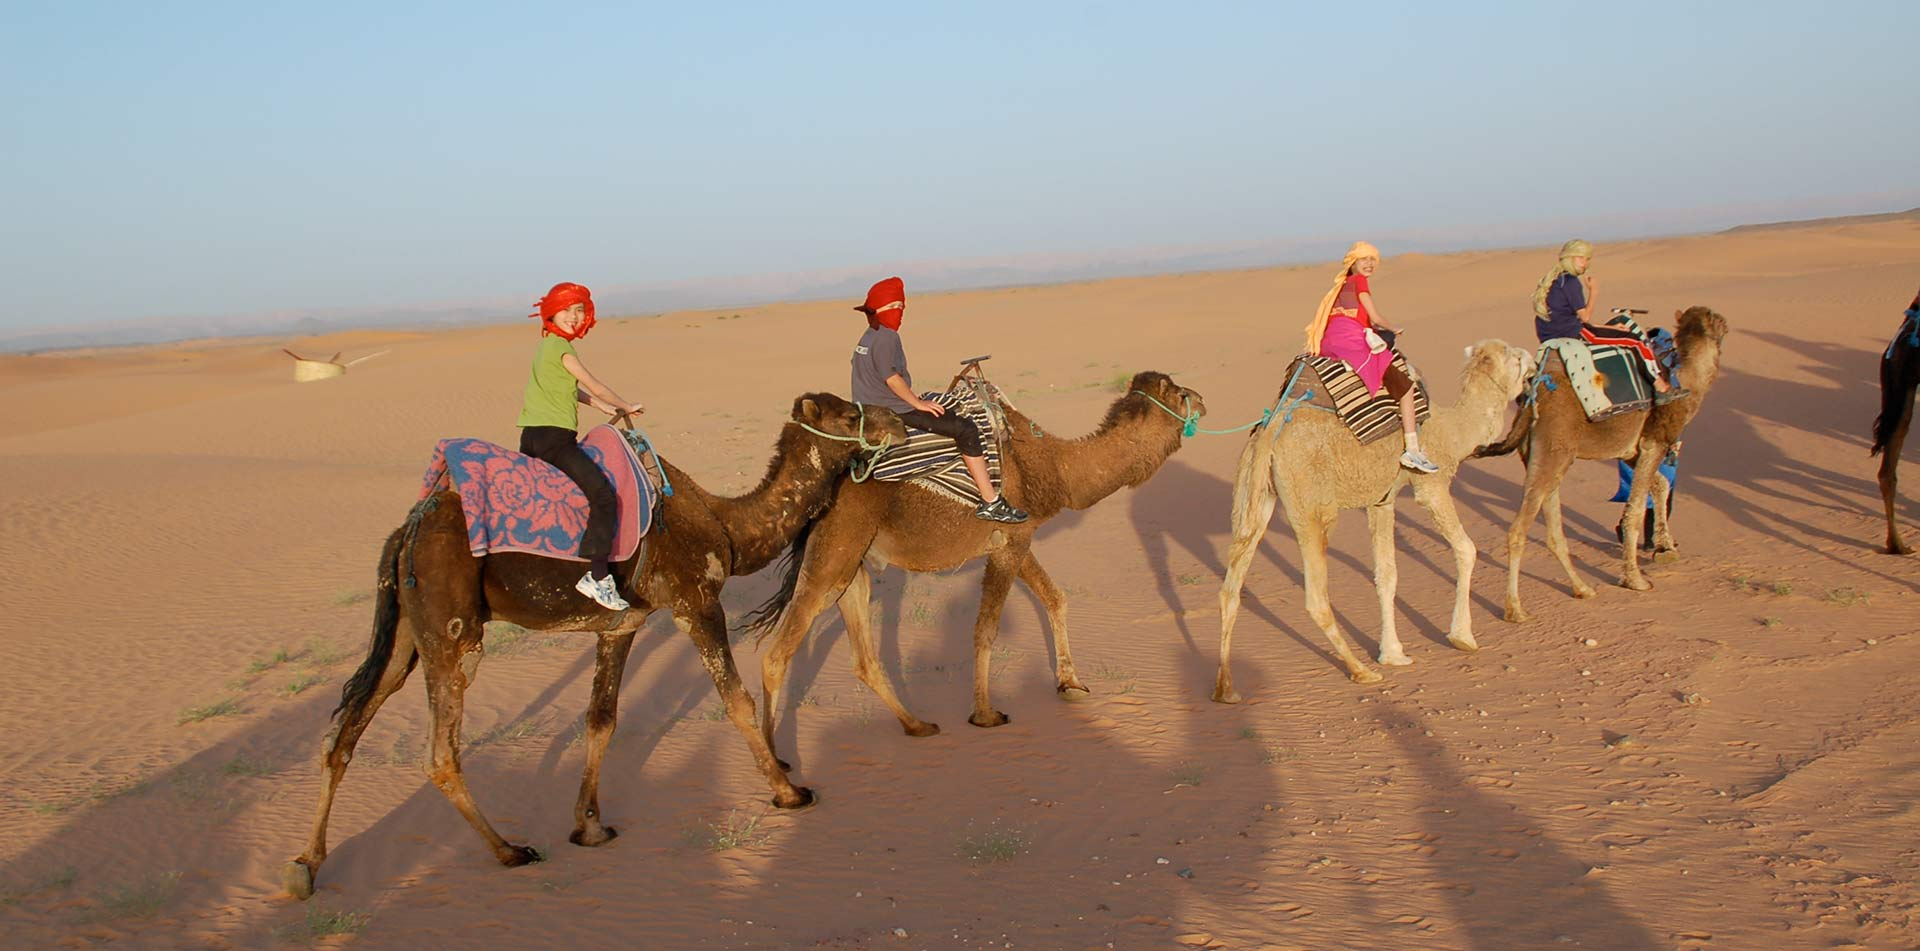 Kids riding camels in Morocco